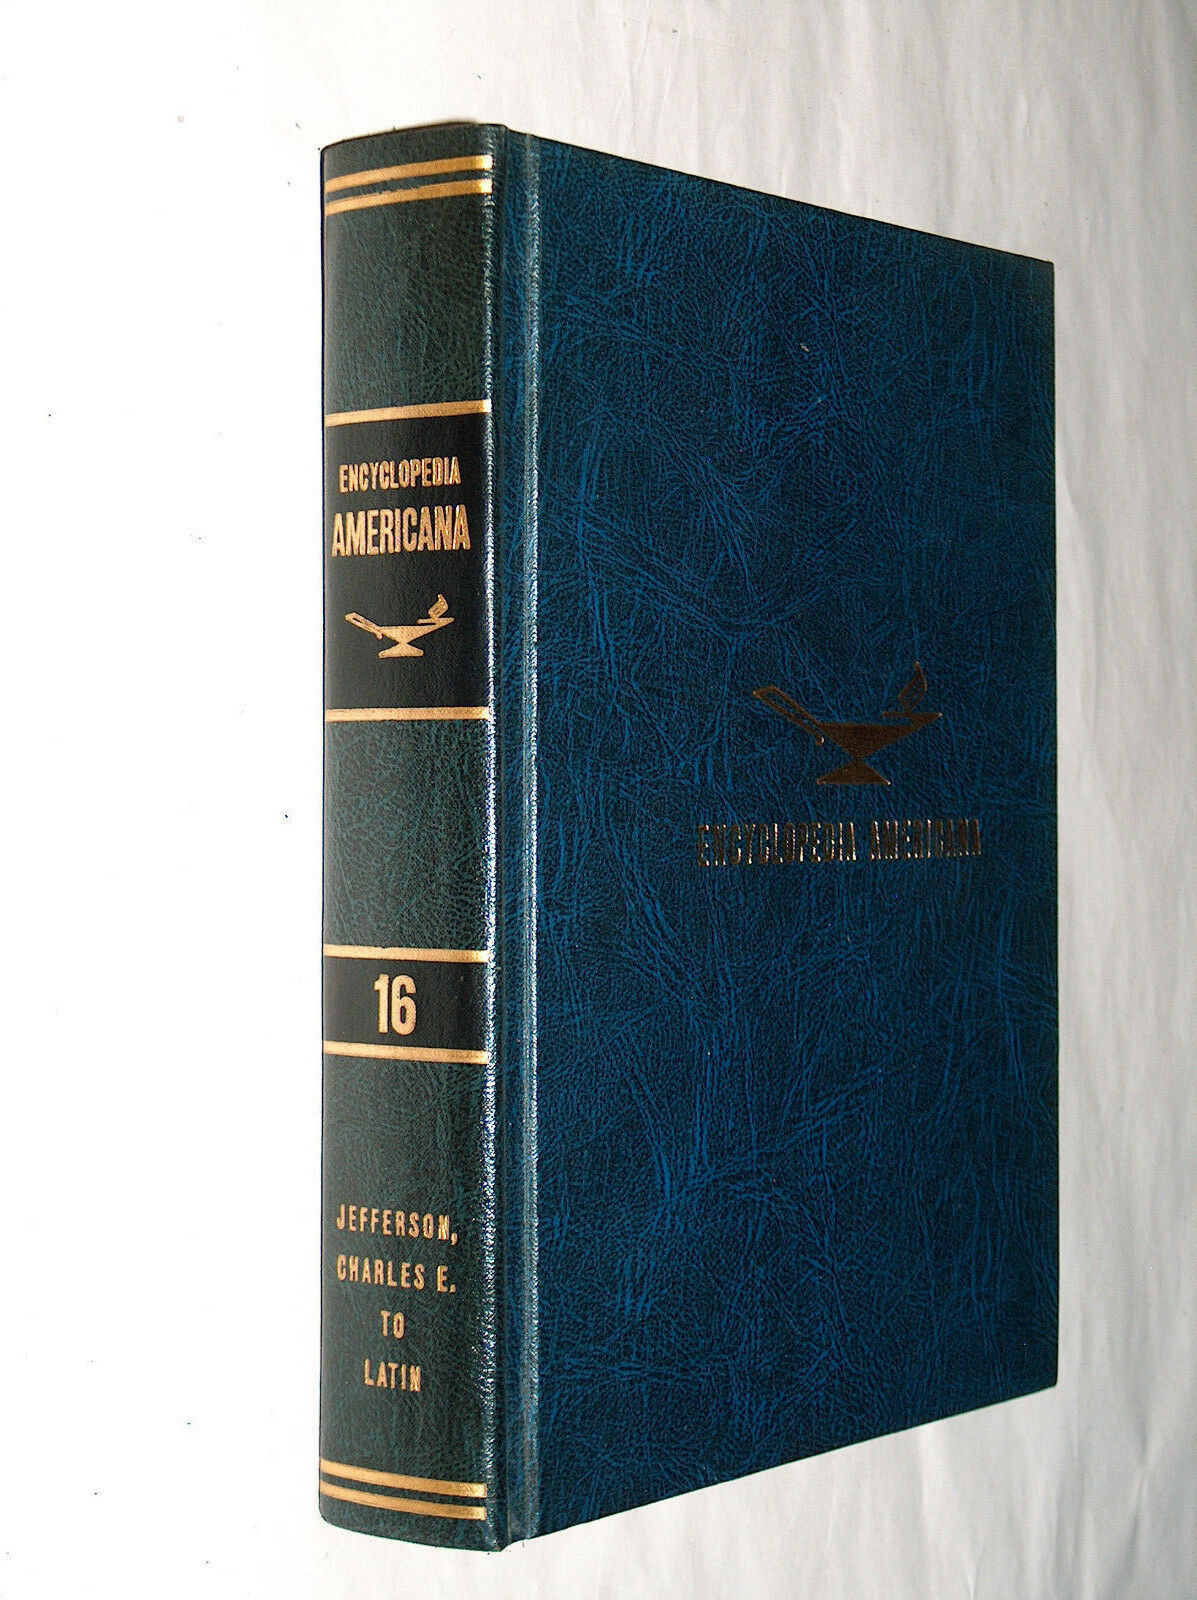 Primary image for 1966 Encyclopedia Americana Replacement Blue Ed 16 Jefferson, Charles E To Latin